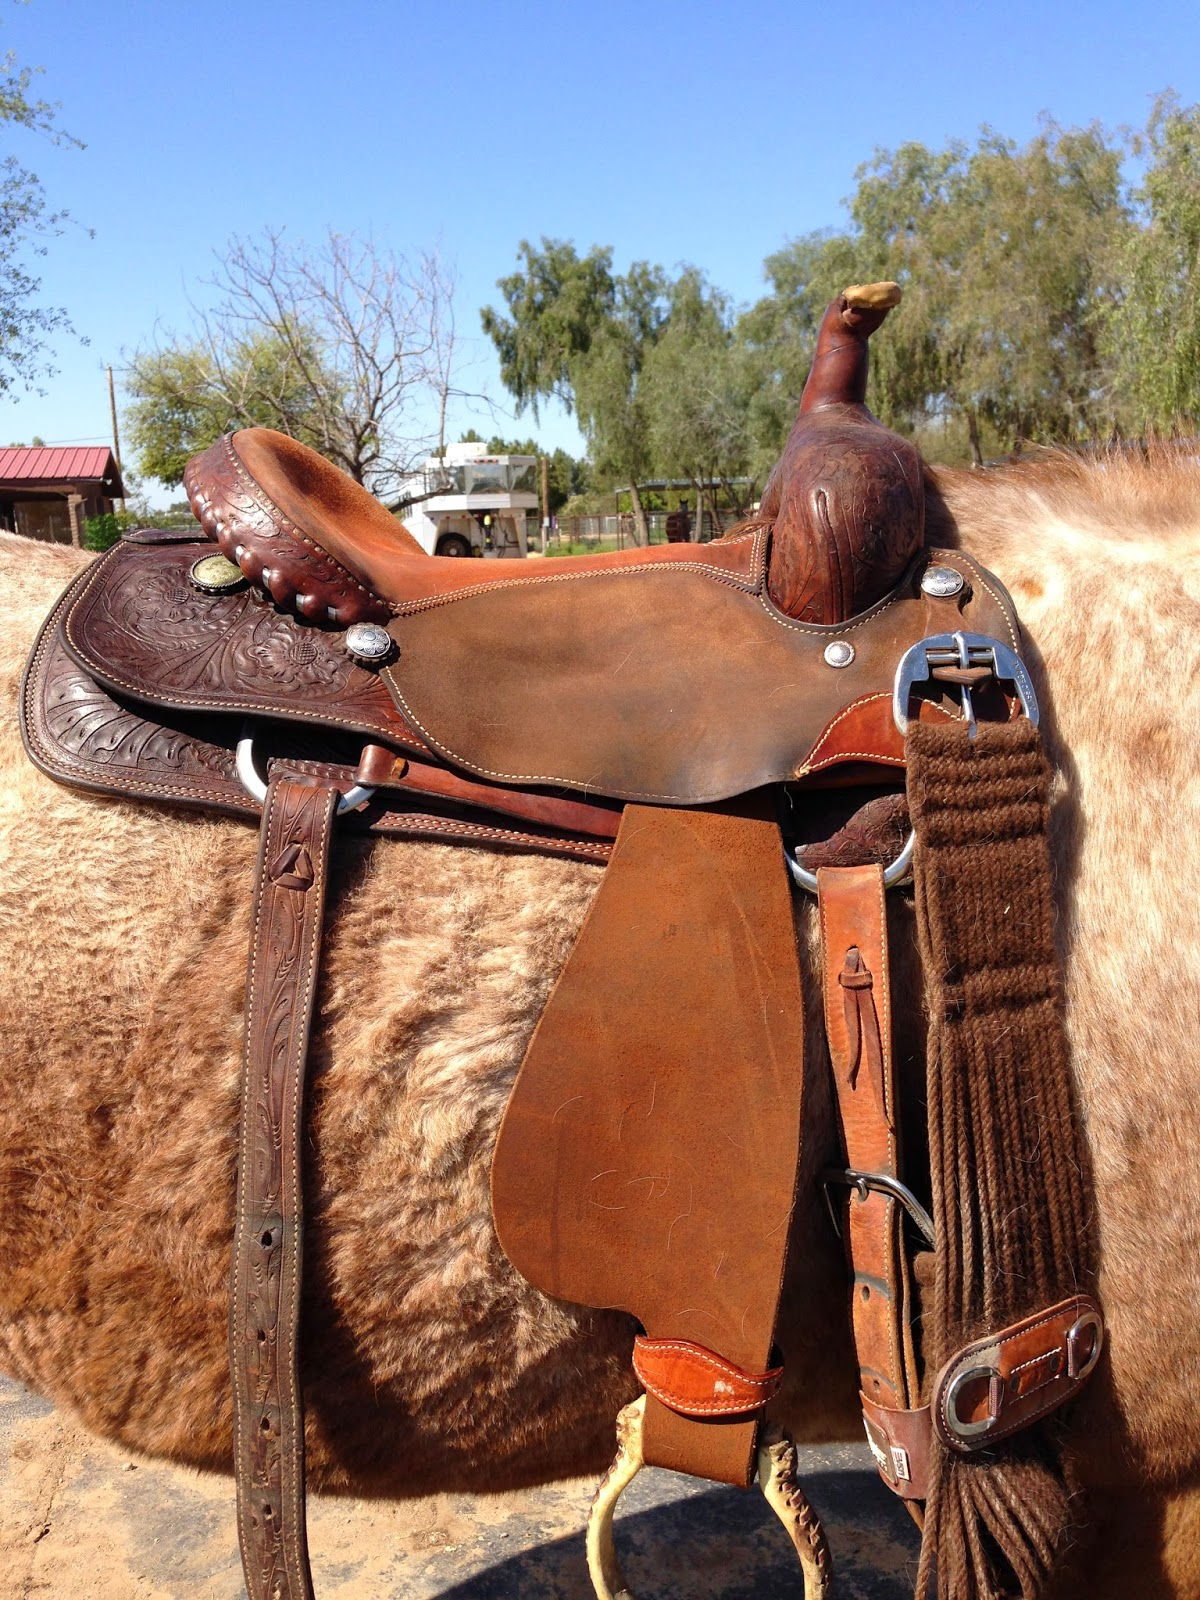 Just as I suspect it, it falls right down on top of their withers. However,  when I added the saddle pads.